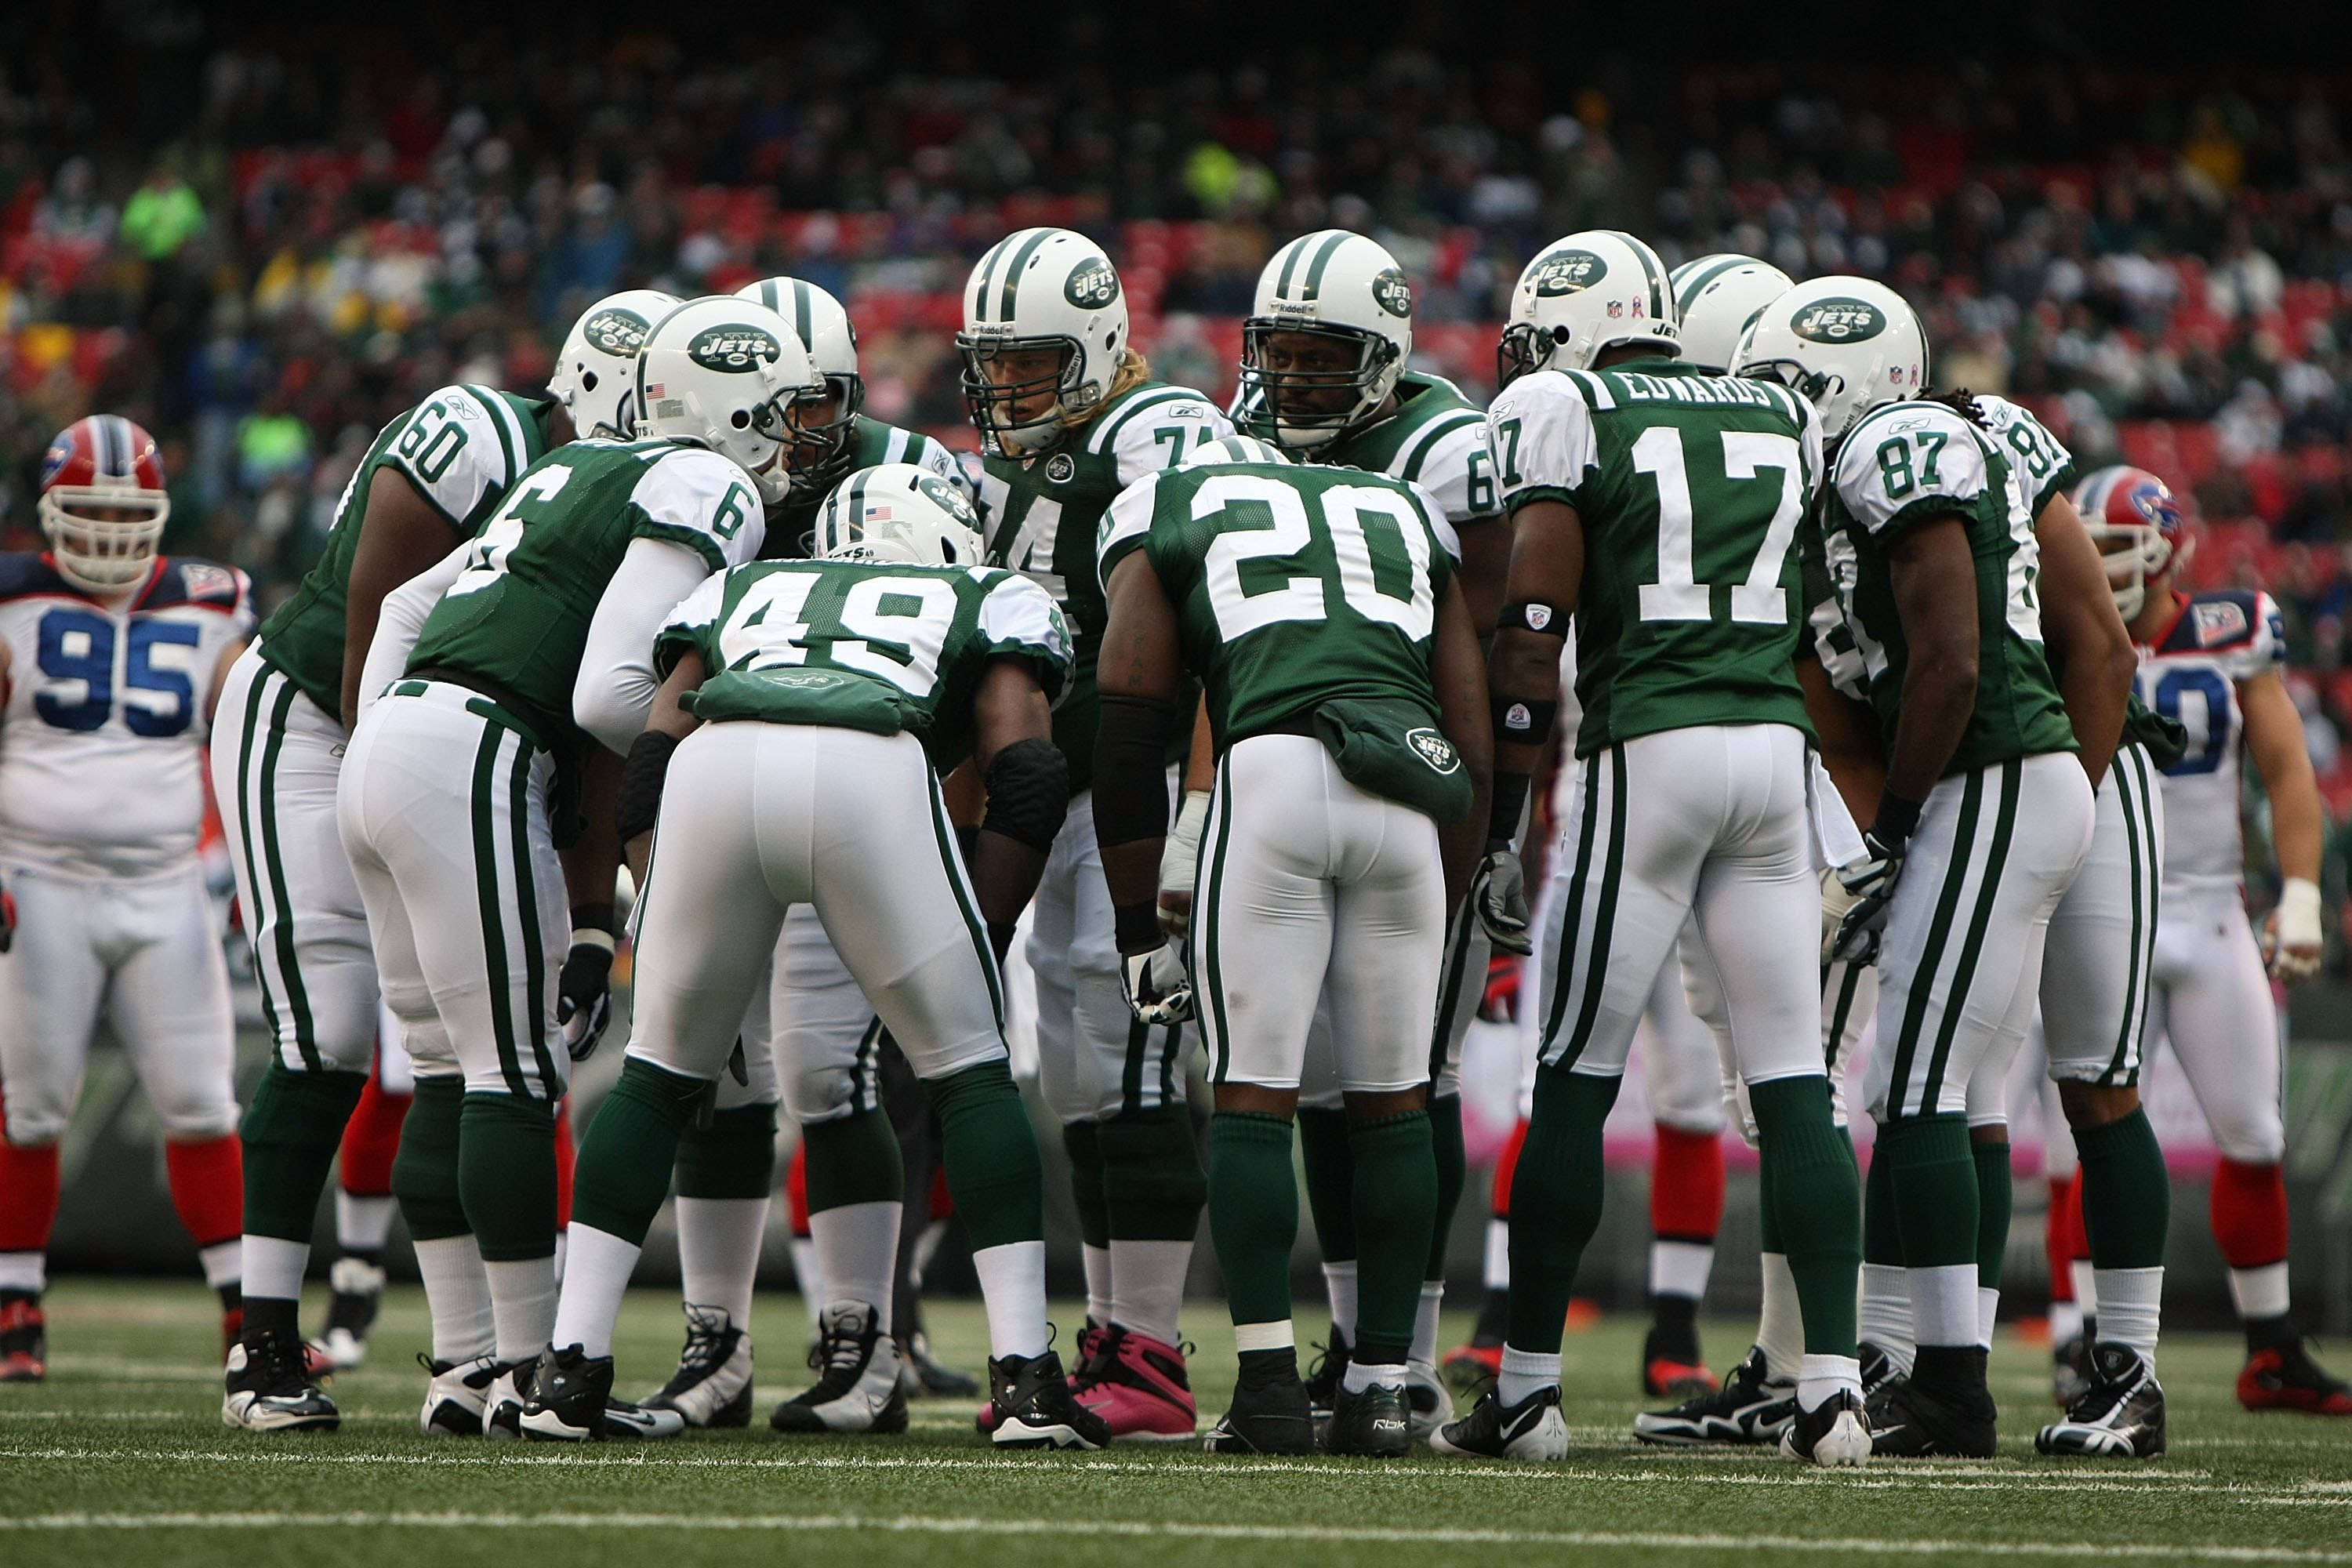 EAST RUTHERFORD, NJ - OCTOBER 18:  The New York Jets huddle against The Buffalo Bills during their game on October 18, 2009 at Giants Stadium in East Rutherford, New Jersey.  (Photo by Al Bello/Getty Images)